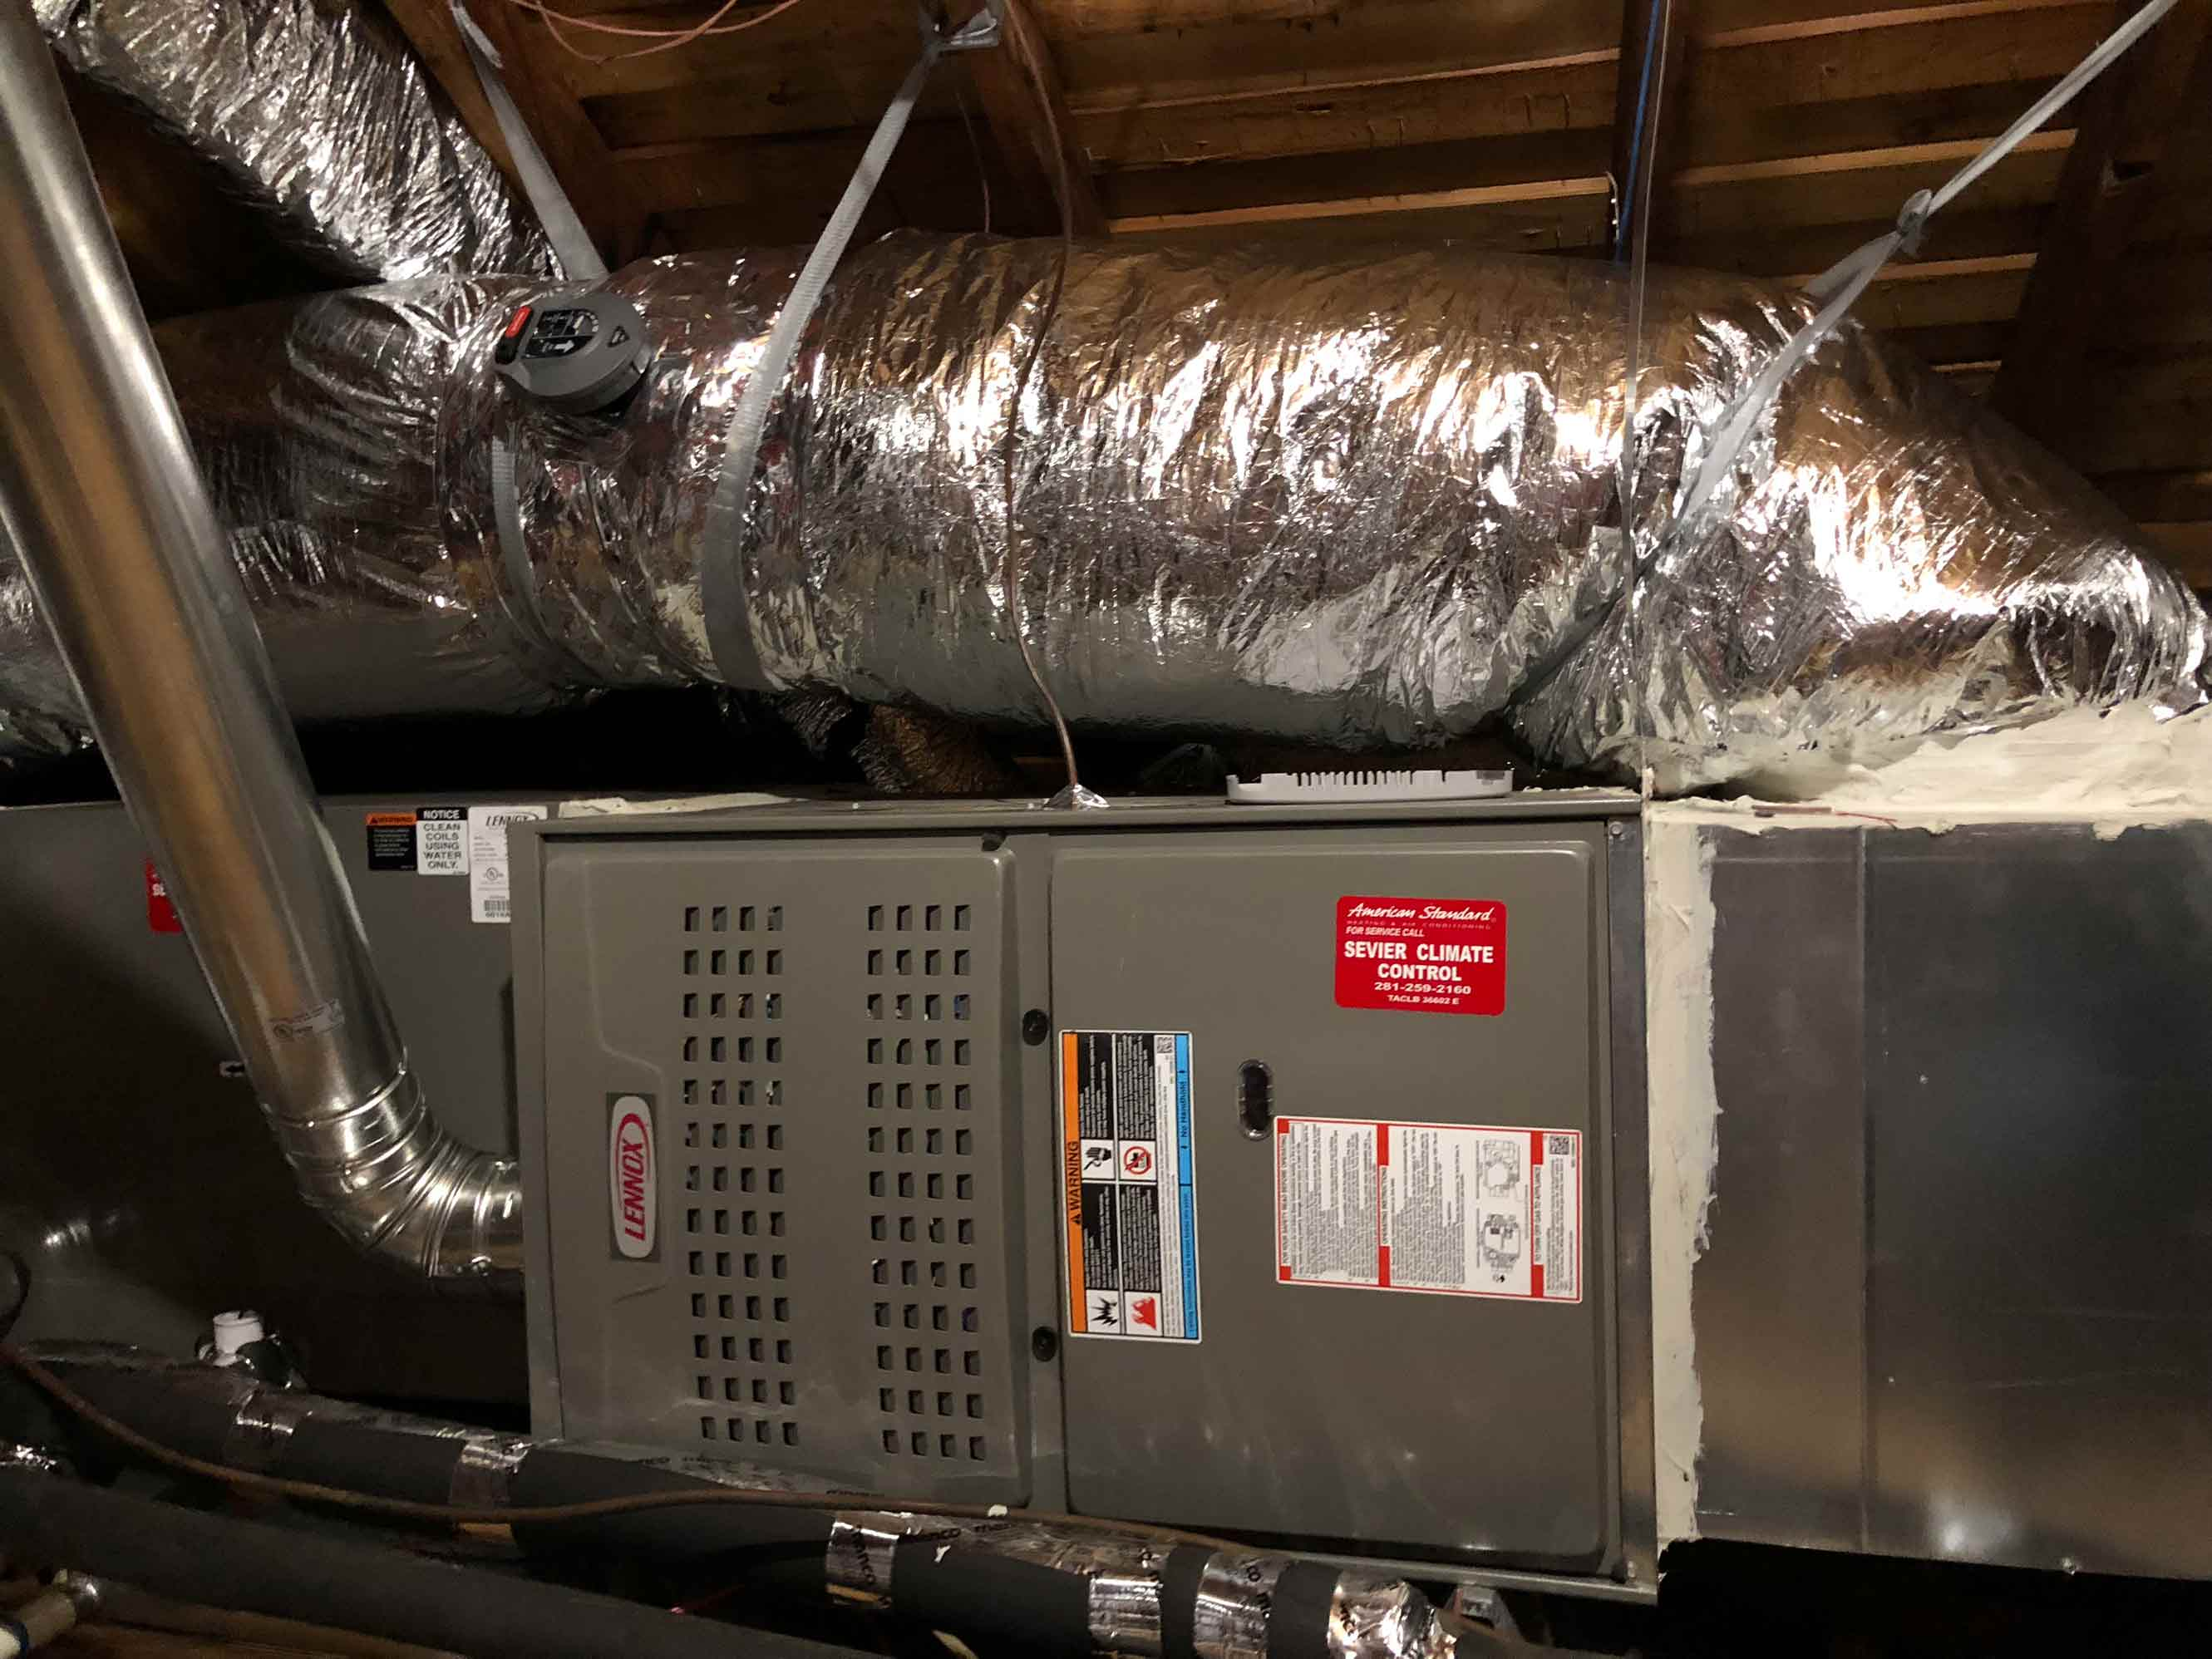 Image of HVAC installation in attic space